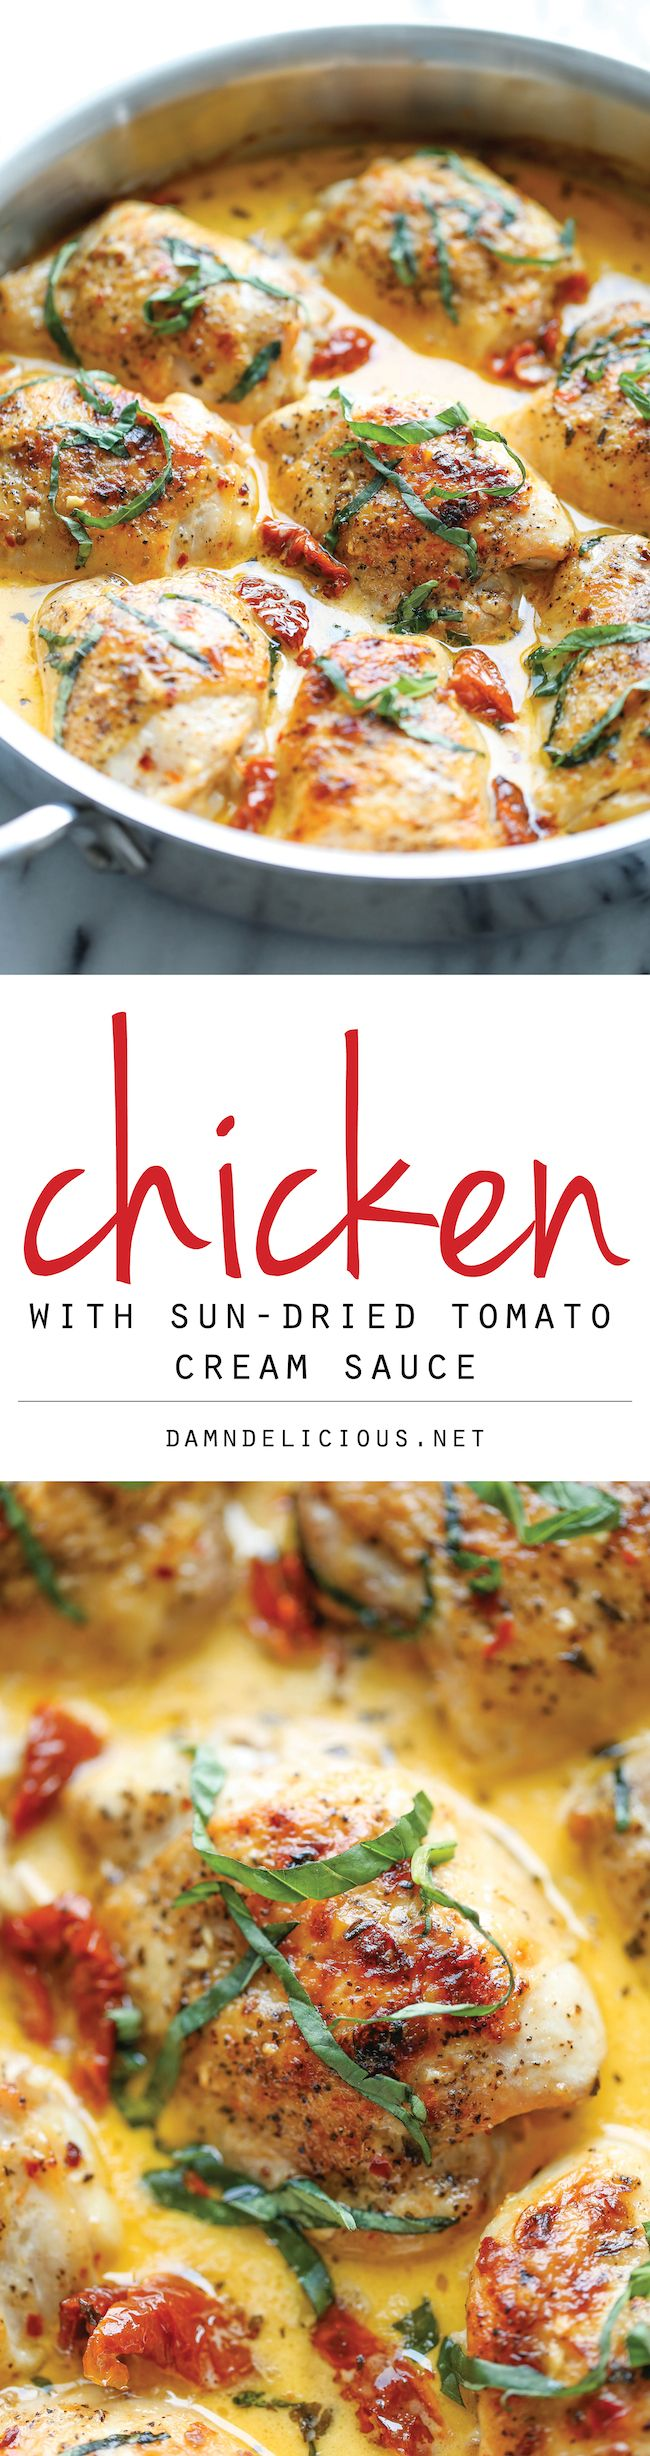 Chicken with Sun-Dried Tomato Cream Sauce - Crisp-tender chicken in a flavorful cream sauce.